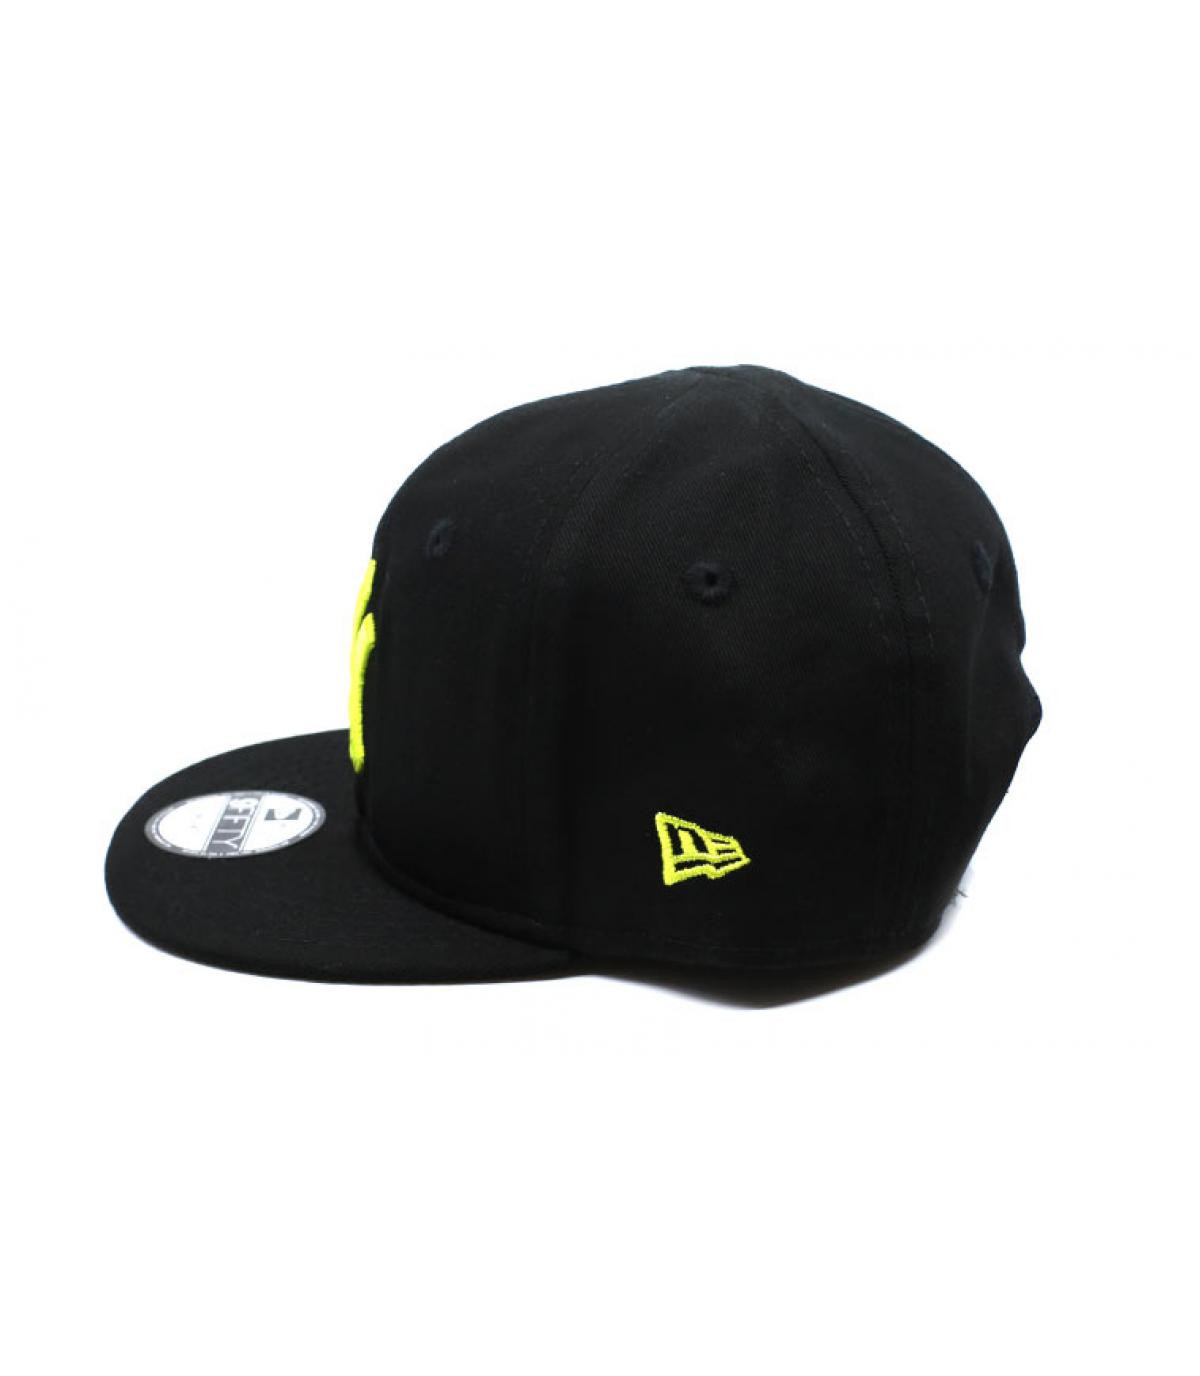 Details Baby League Ess NY 9Fifty black cyber yellow - afbeeling 4